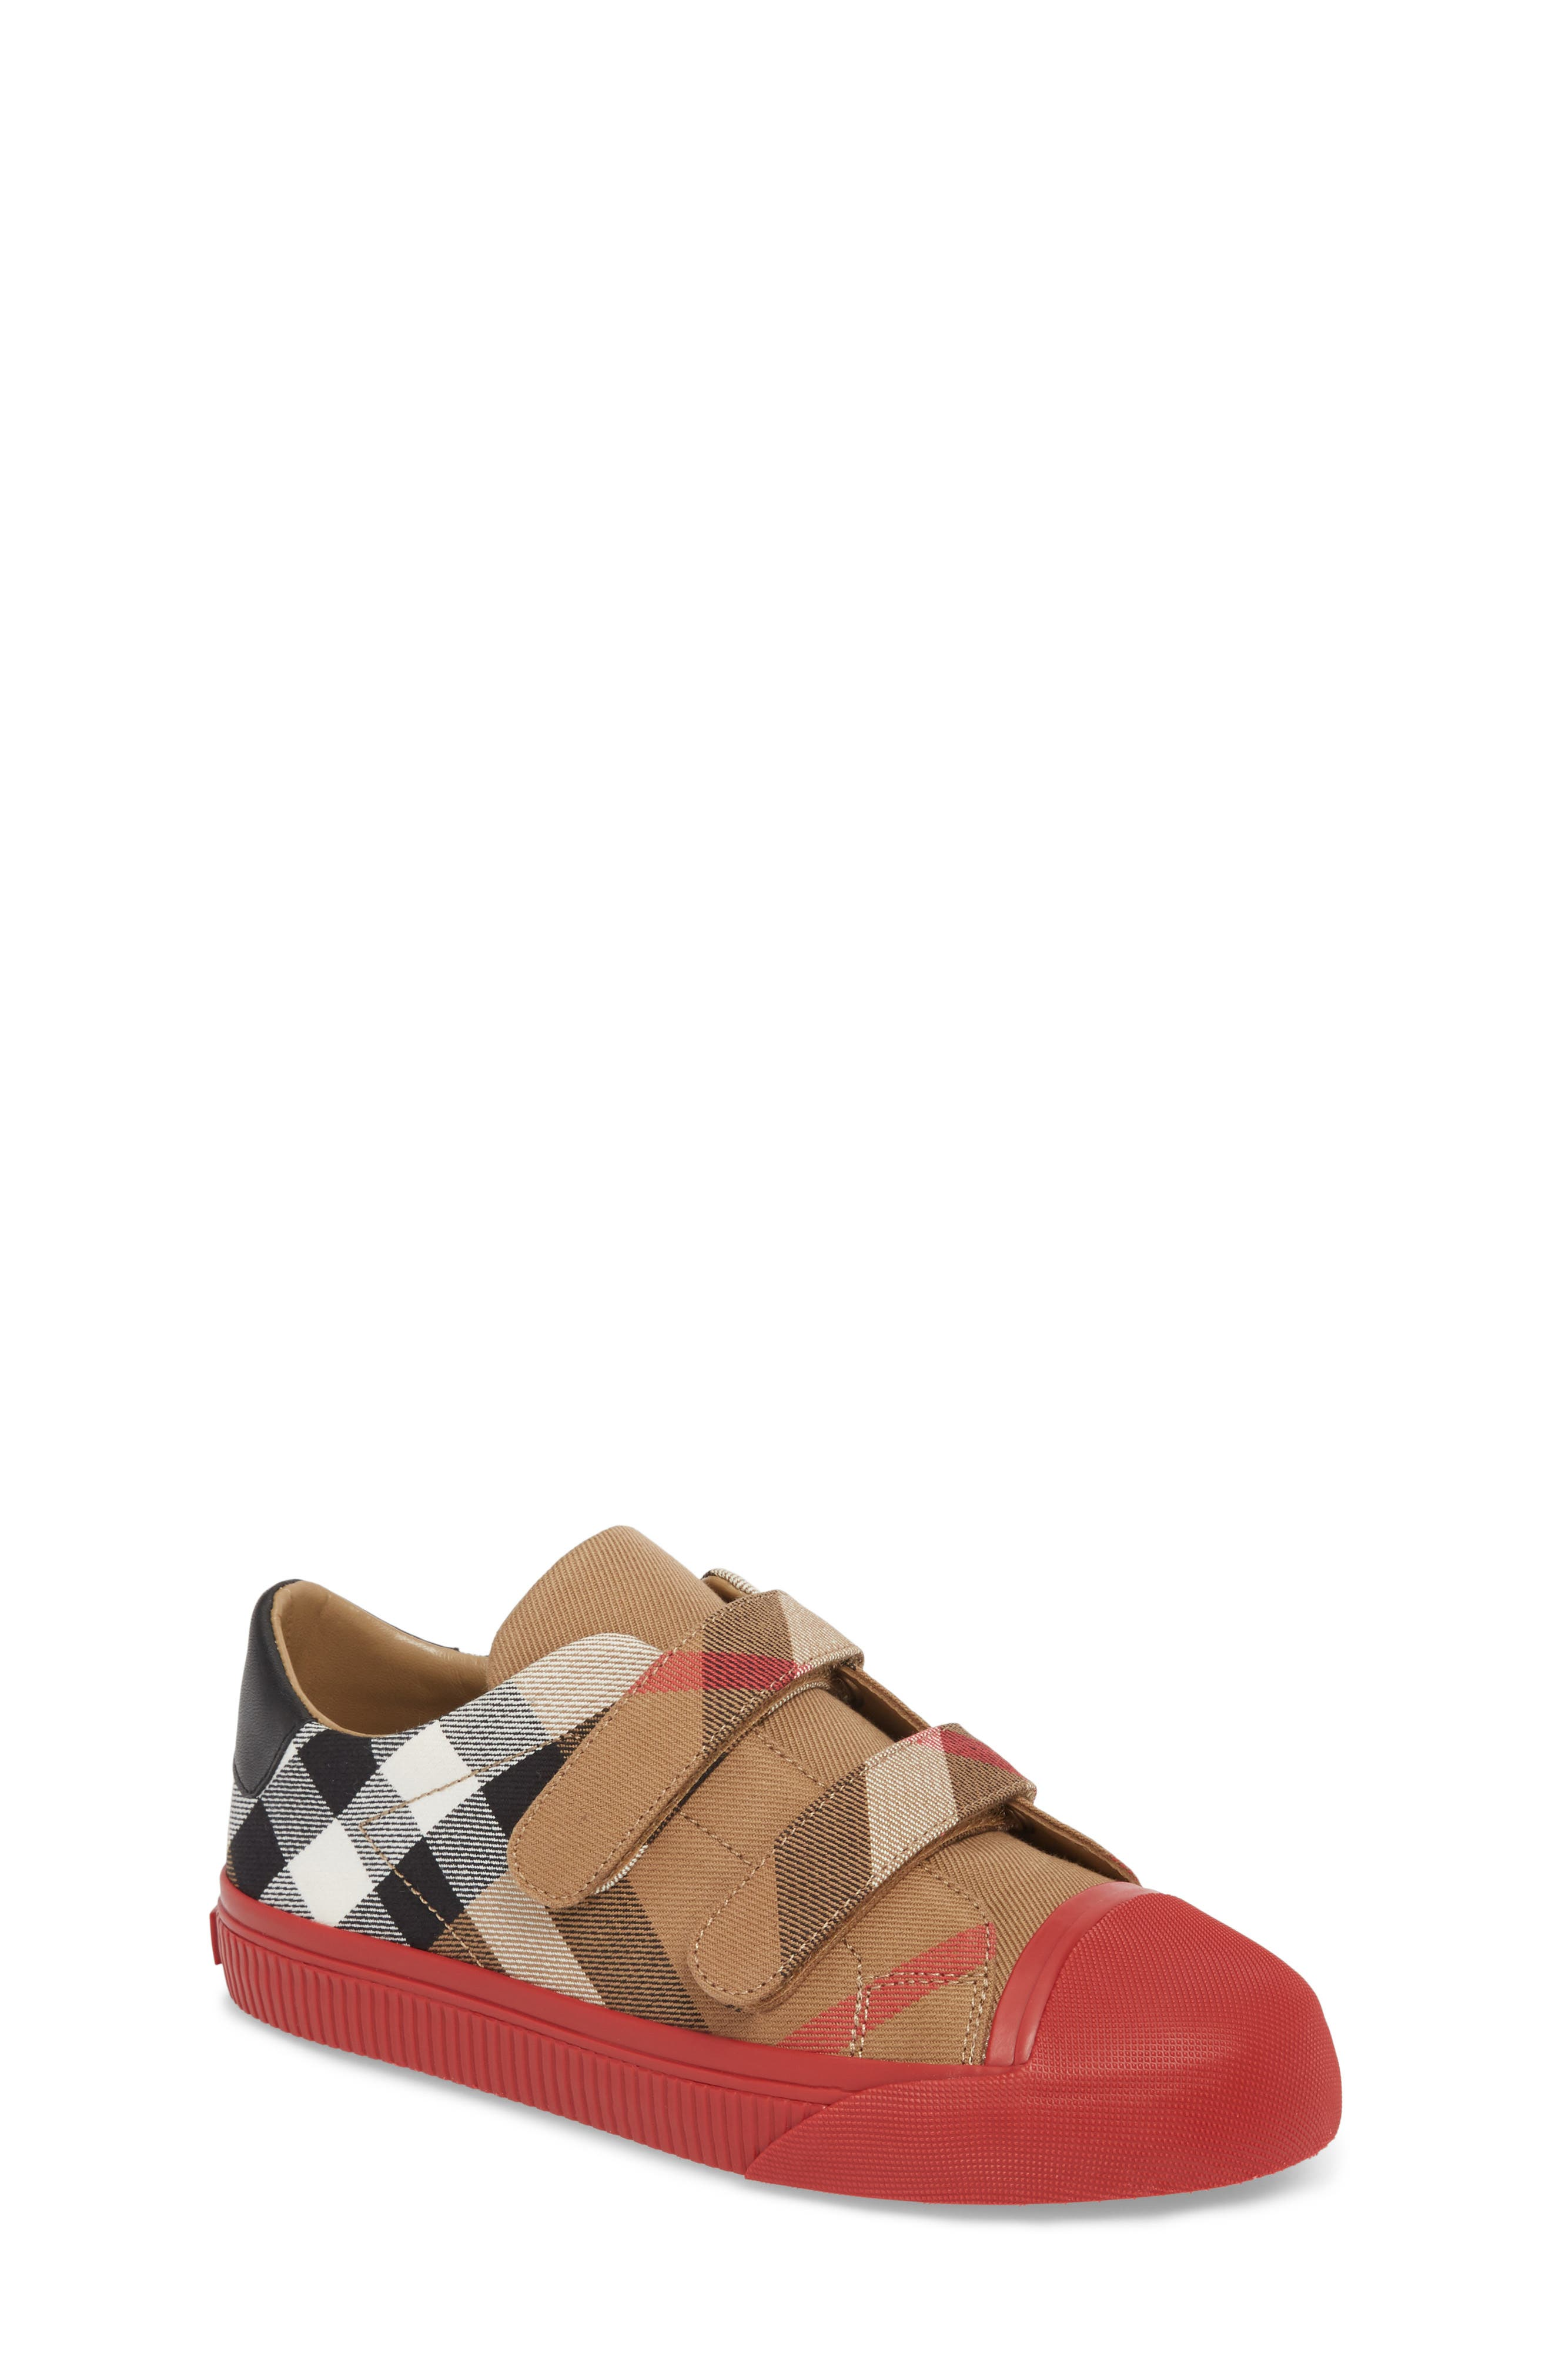 Belside Sneaker,                         Main,                         color, Classic/ Parade Red